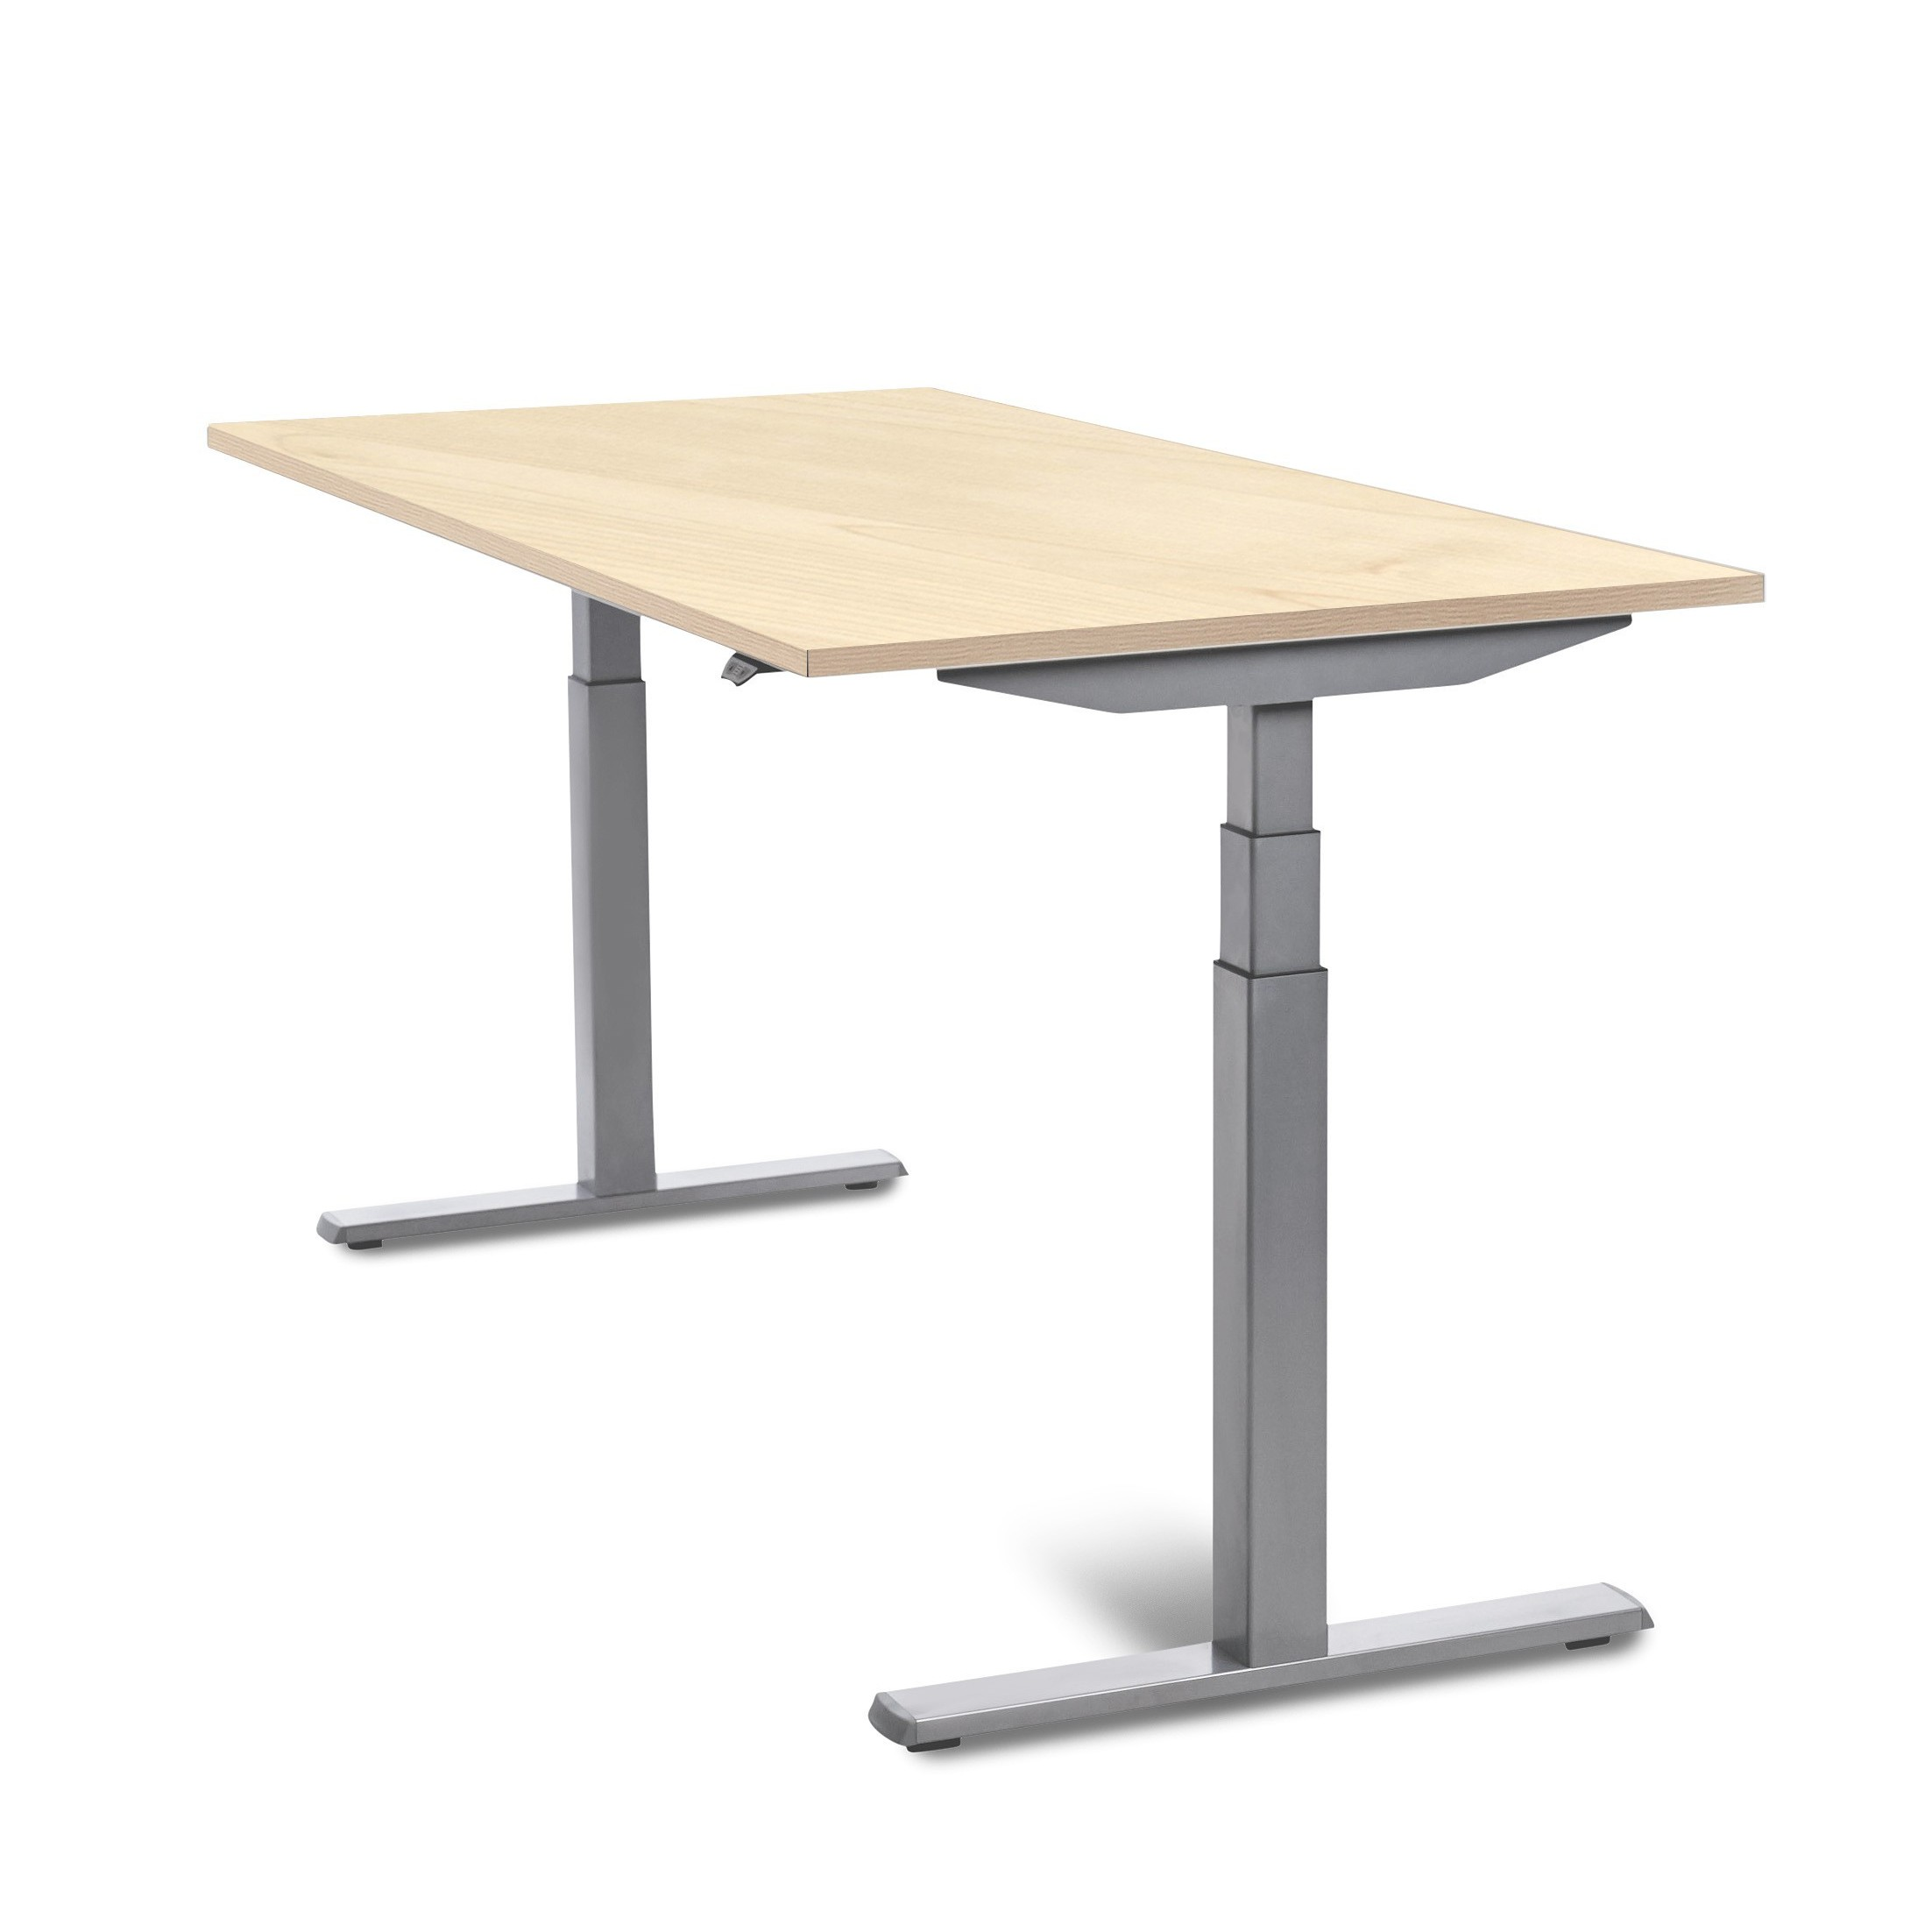 180cm HEIGHT ADJUSTABLE ELECTRICALLY DASH TABLE BEECH COLOR